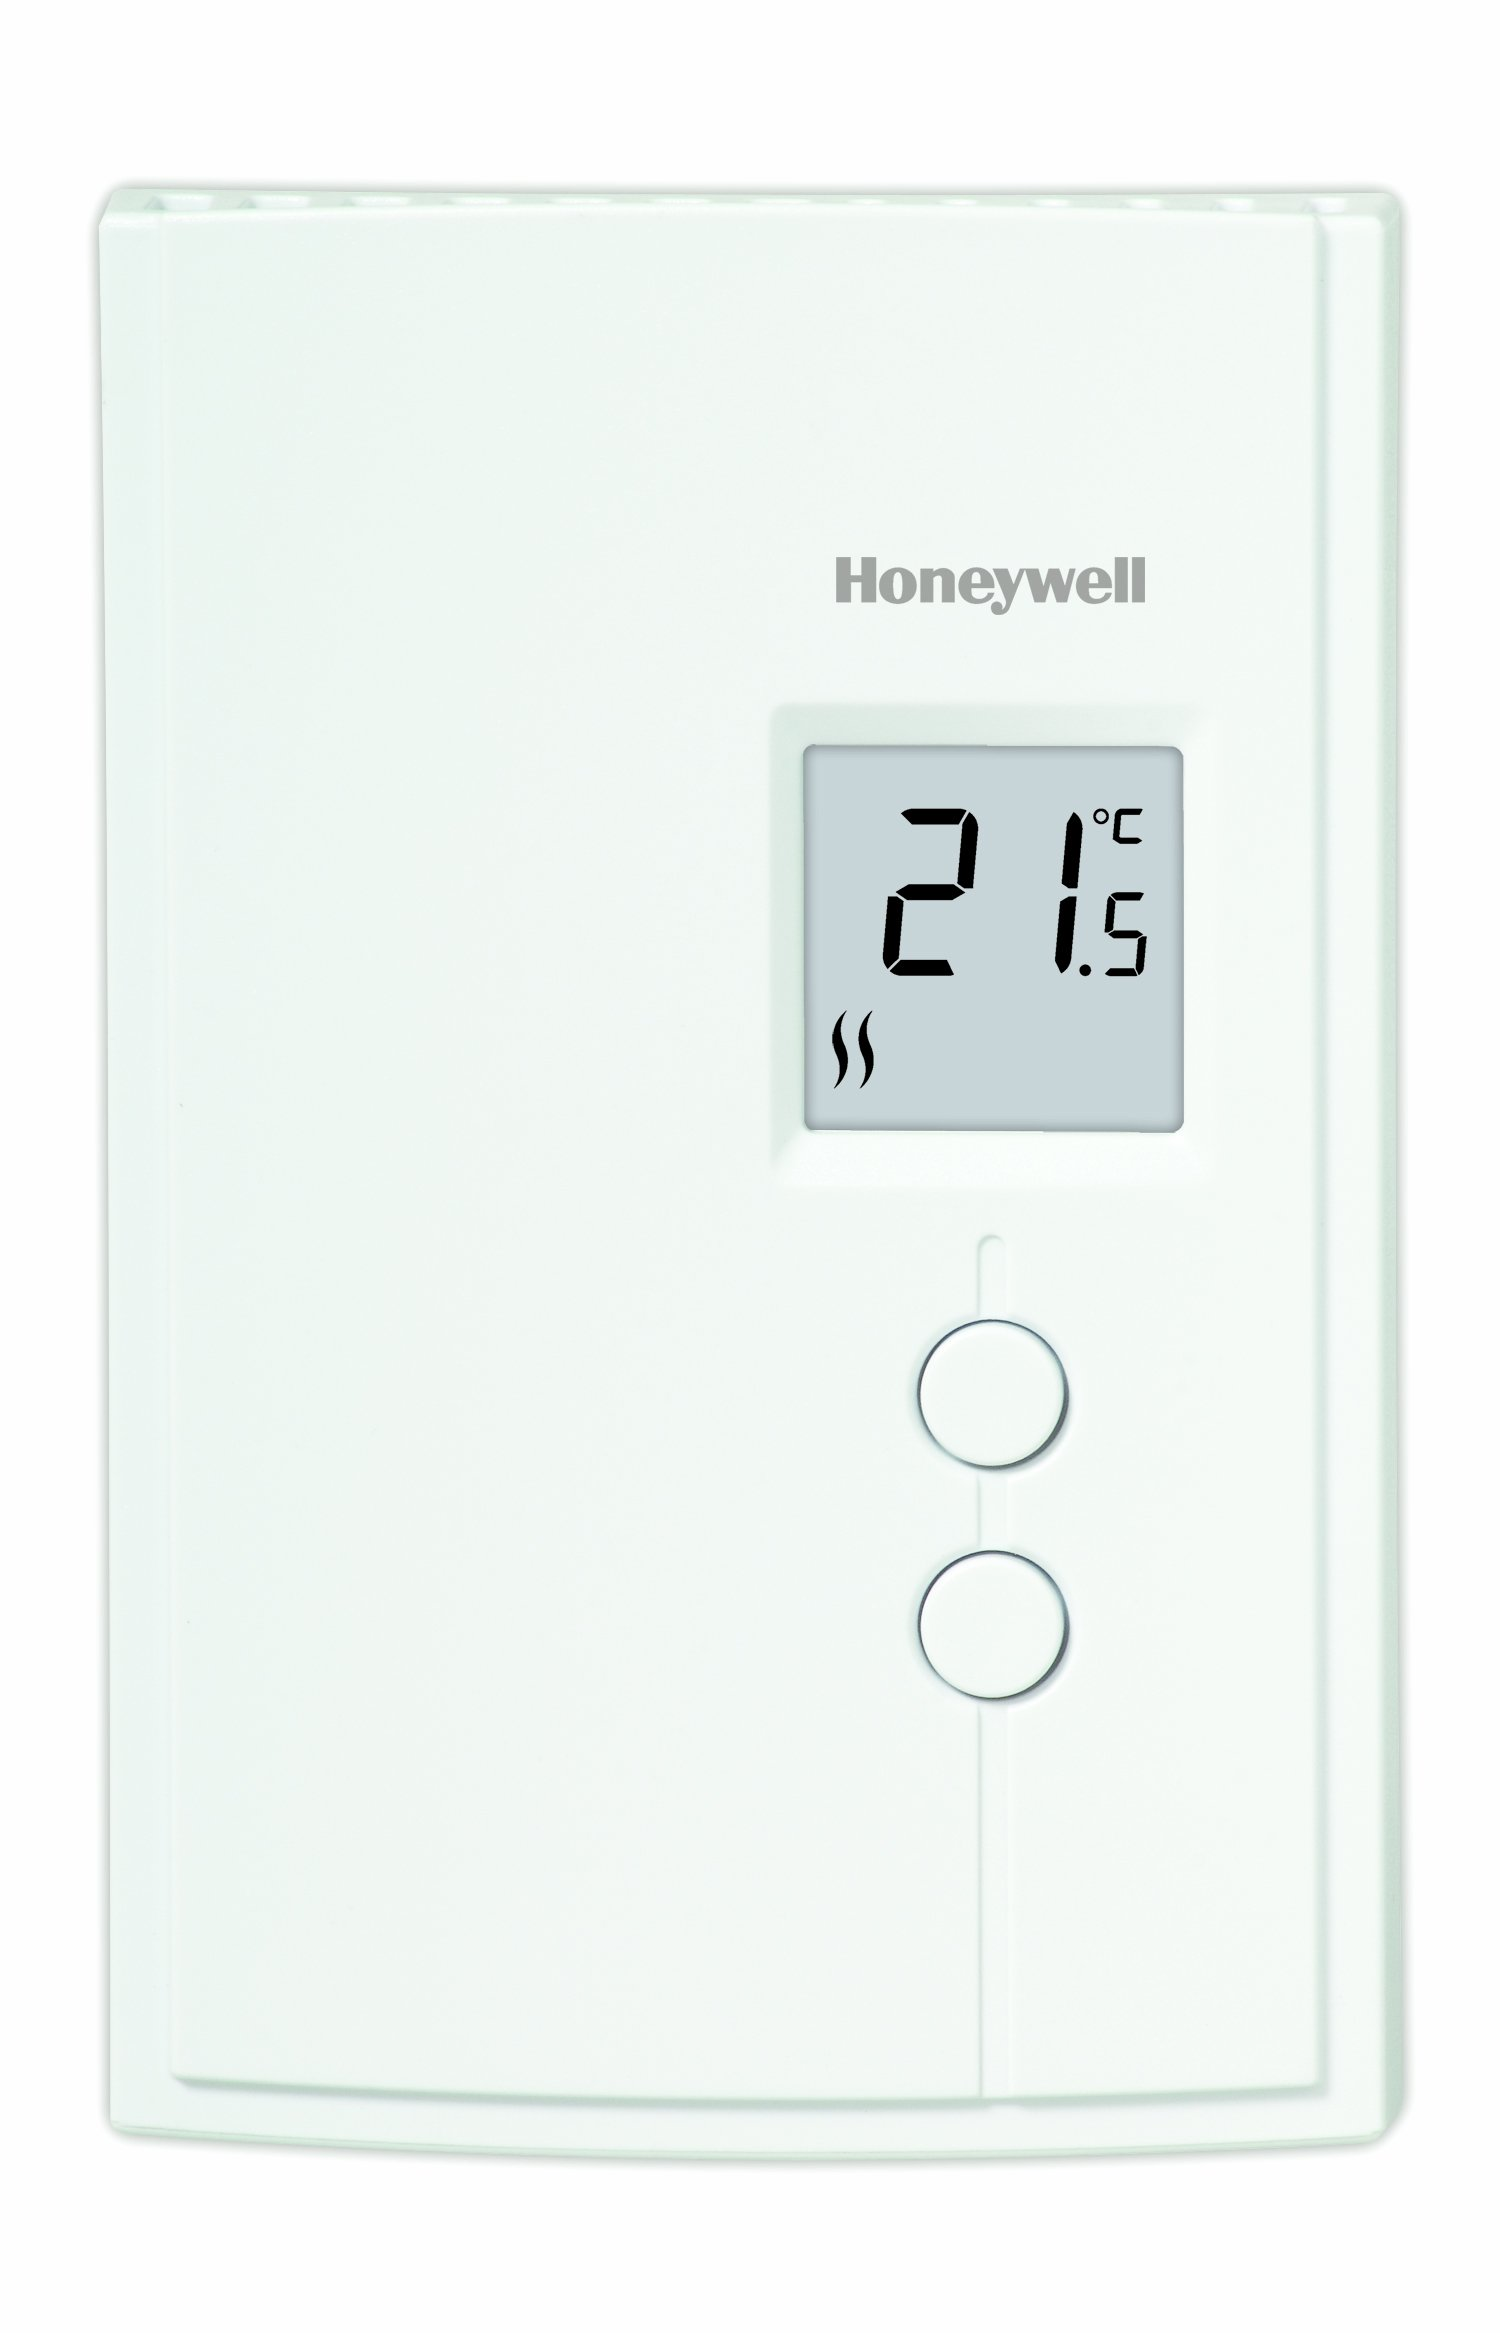 Honeywell RLV3120A1005/E1 Digital Non-Programmable Thermostat for Electric Baseboard Heating by Honeywell